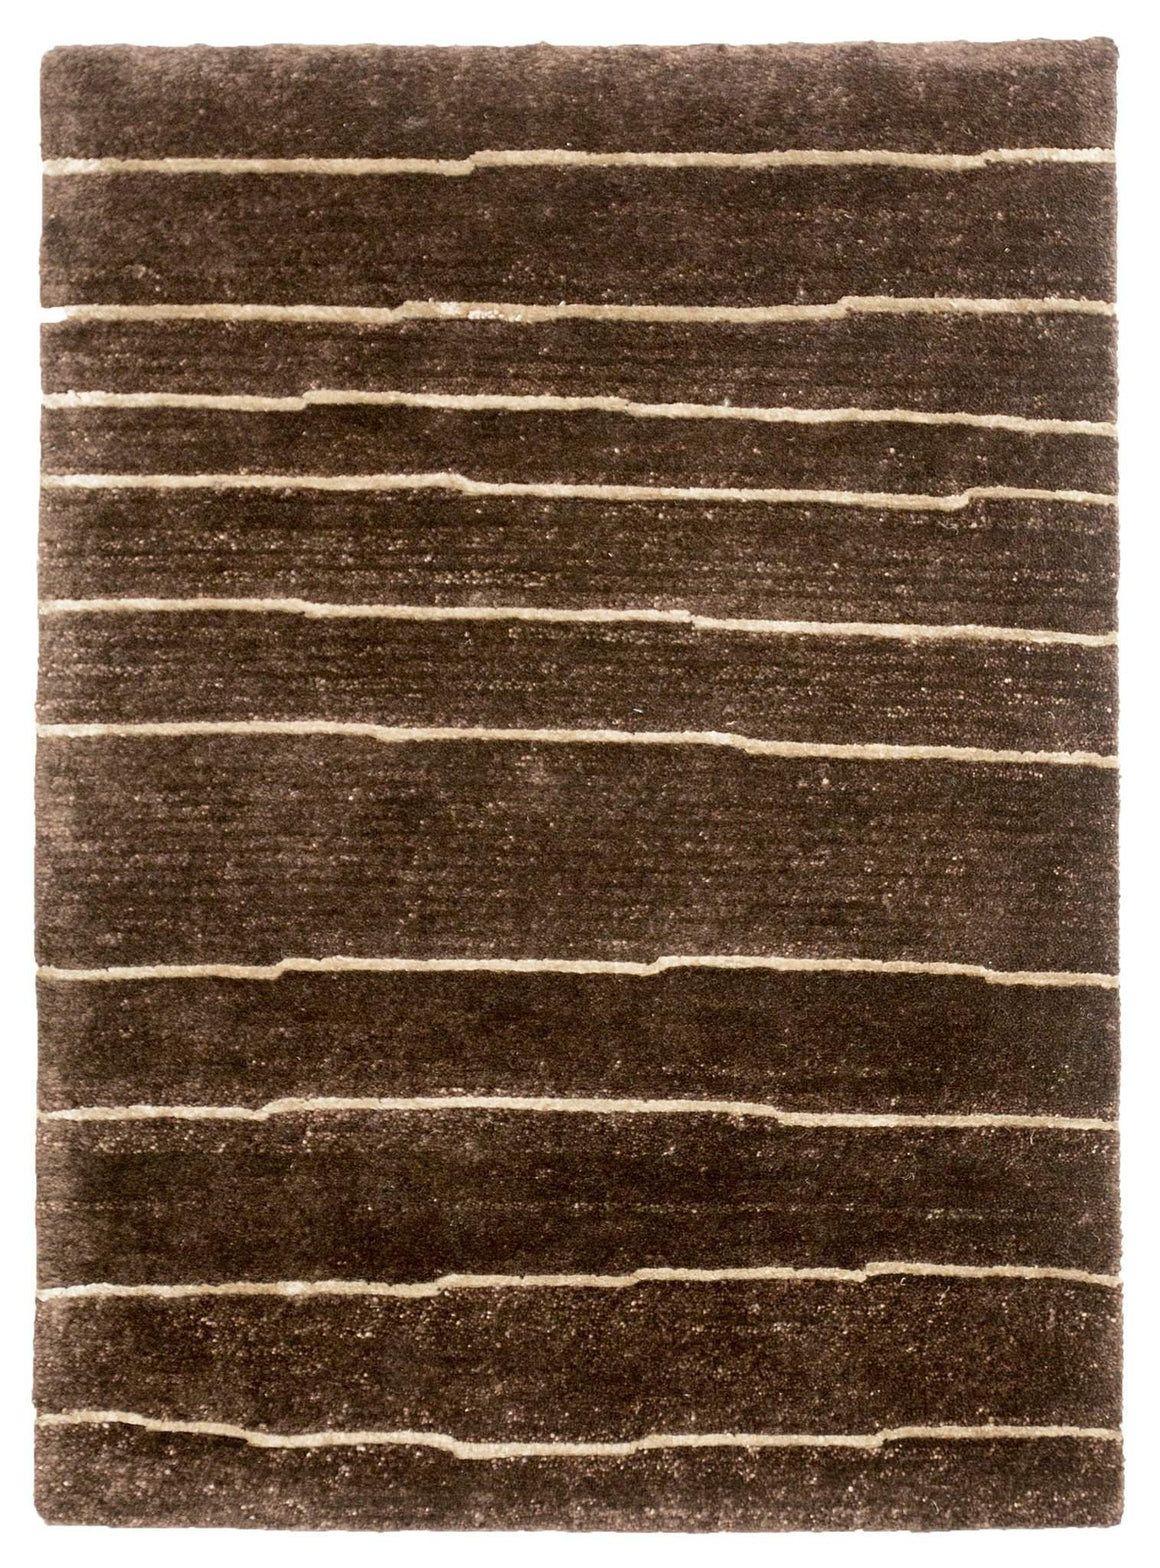 2' x 3' Modern Brown Stripe Wool Small Rug by Rug Shop and More Area Rugs - Rug Shop and More